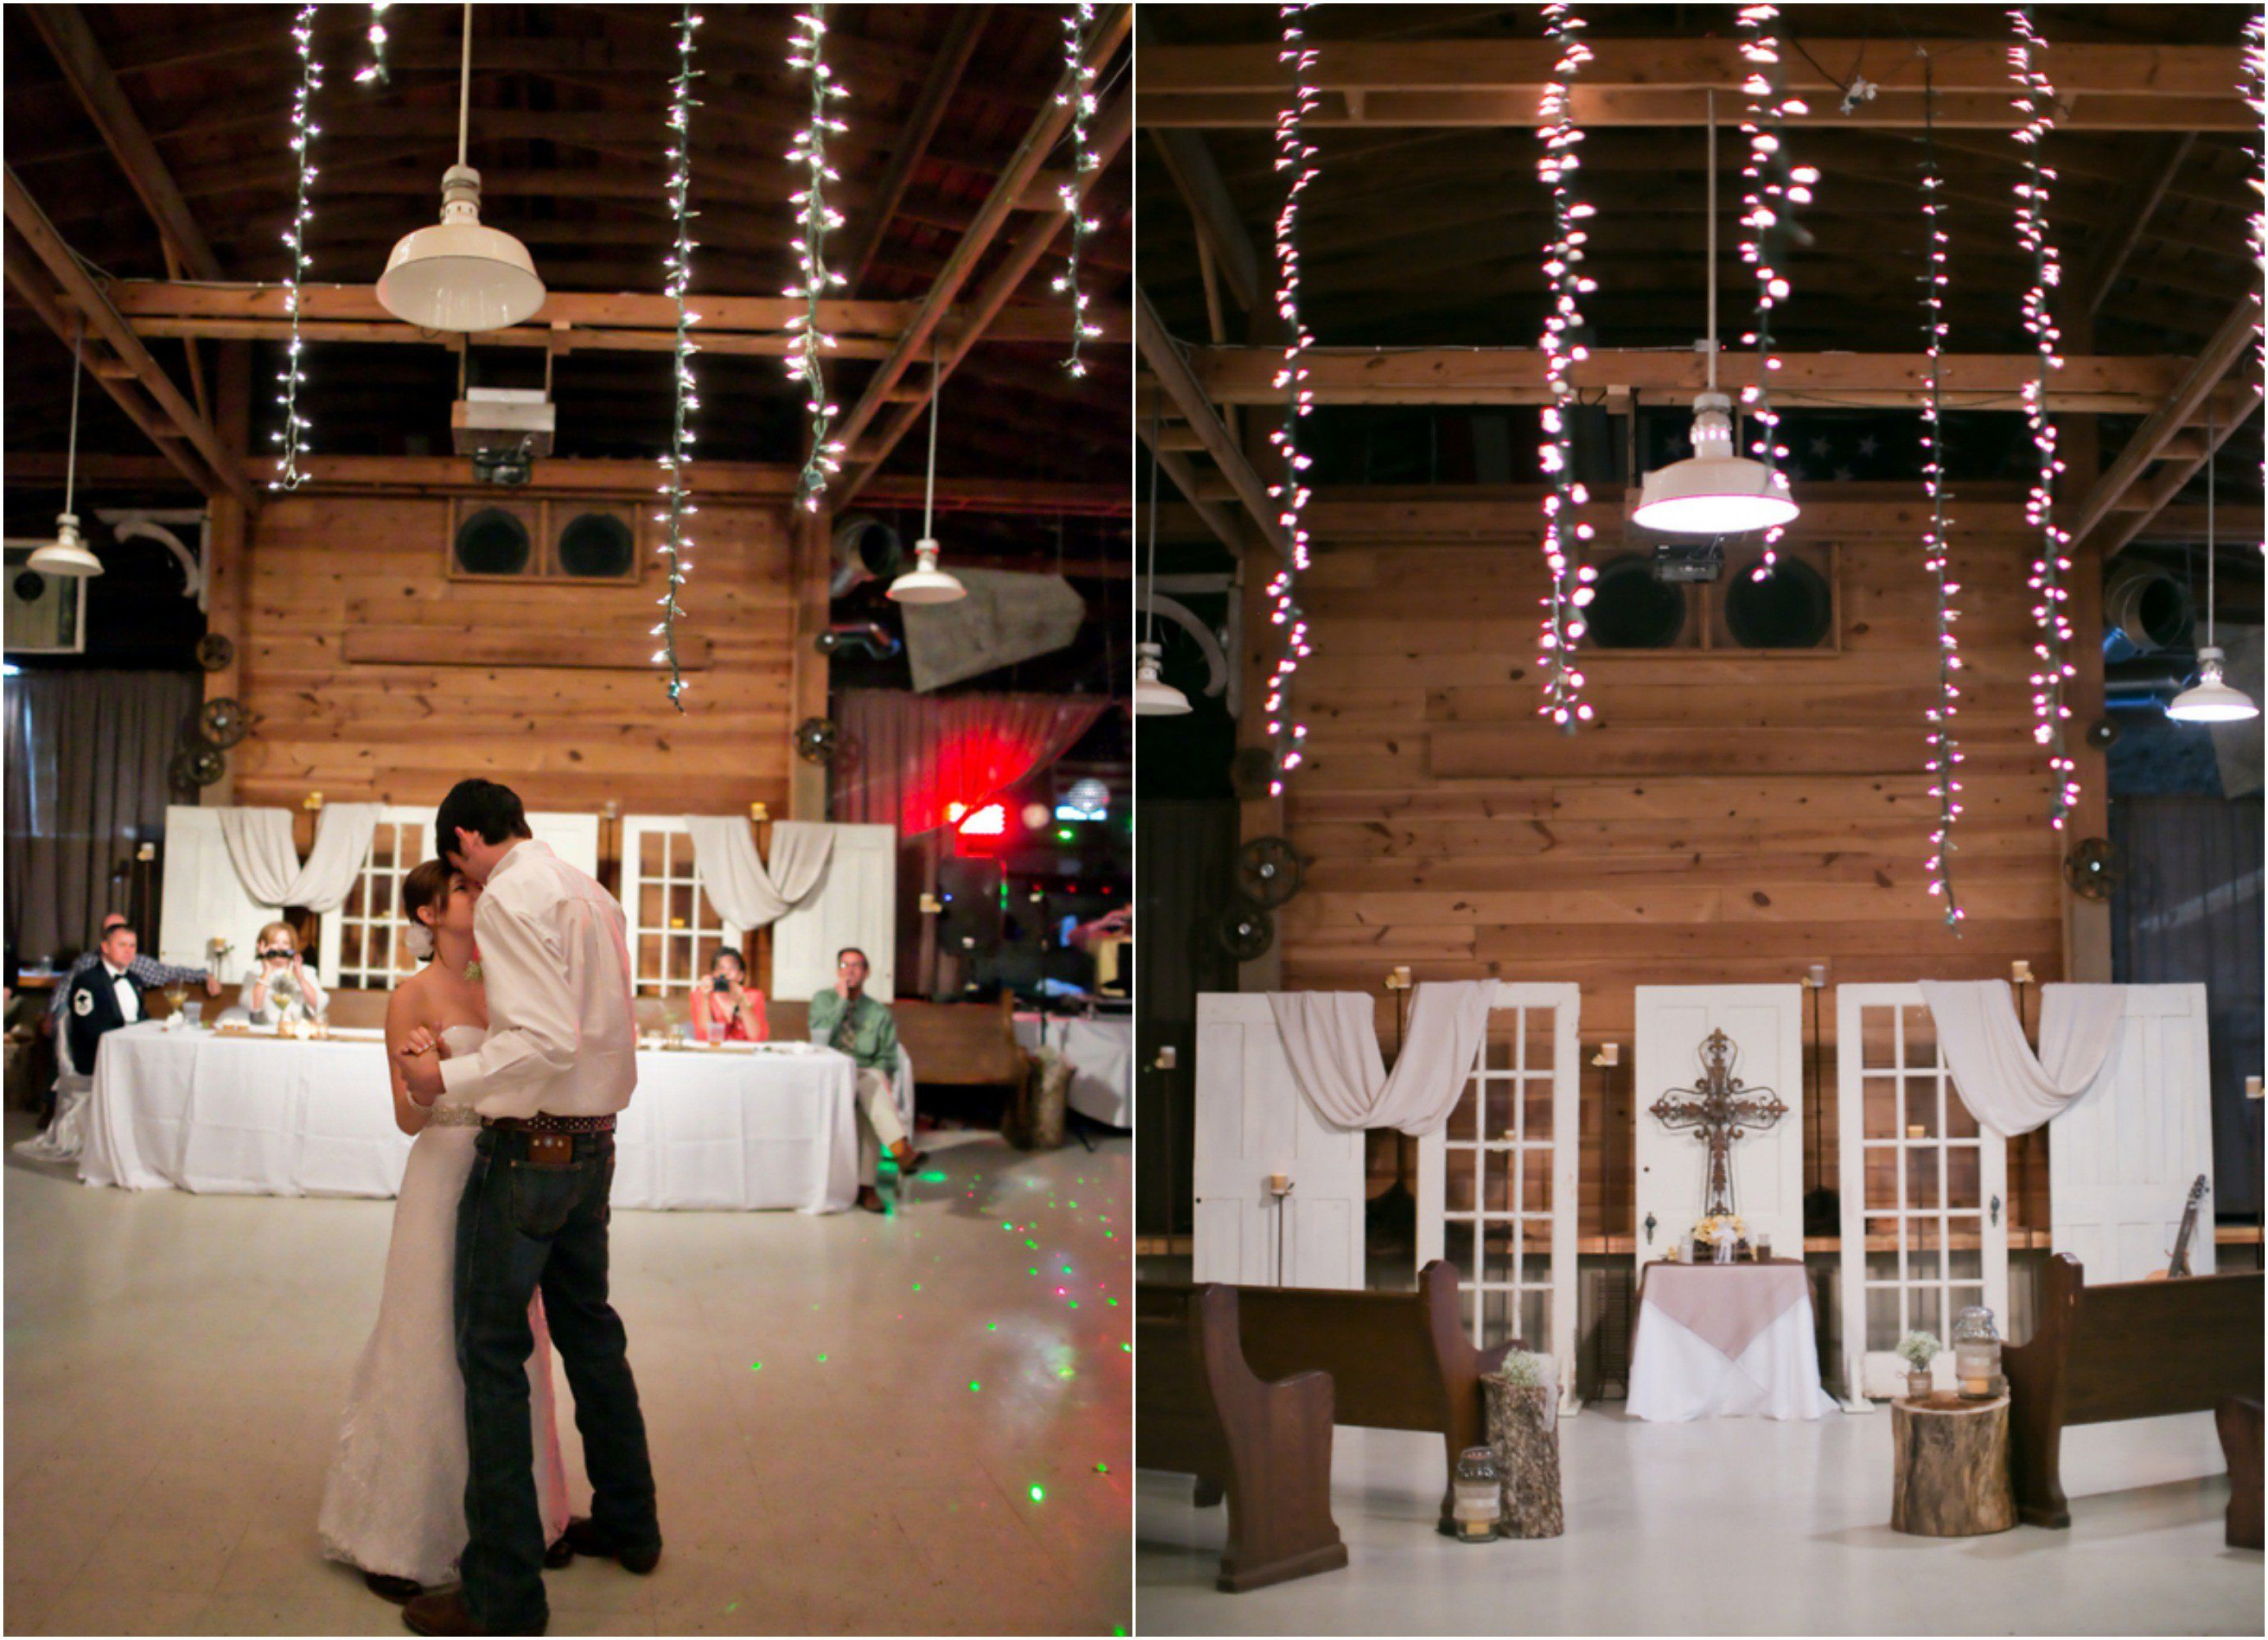 Texas Barn Wedding With Country Decorations